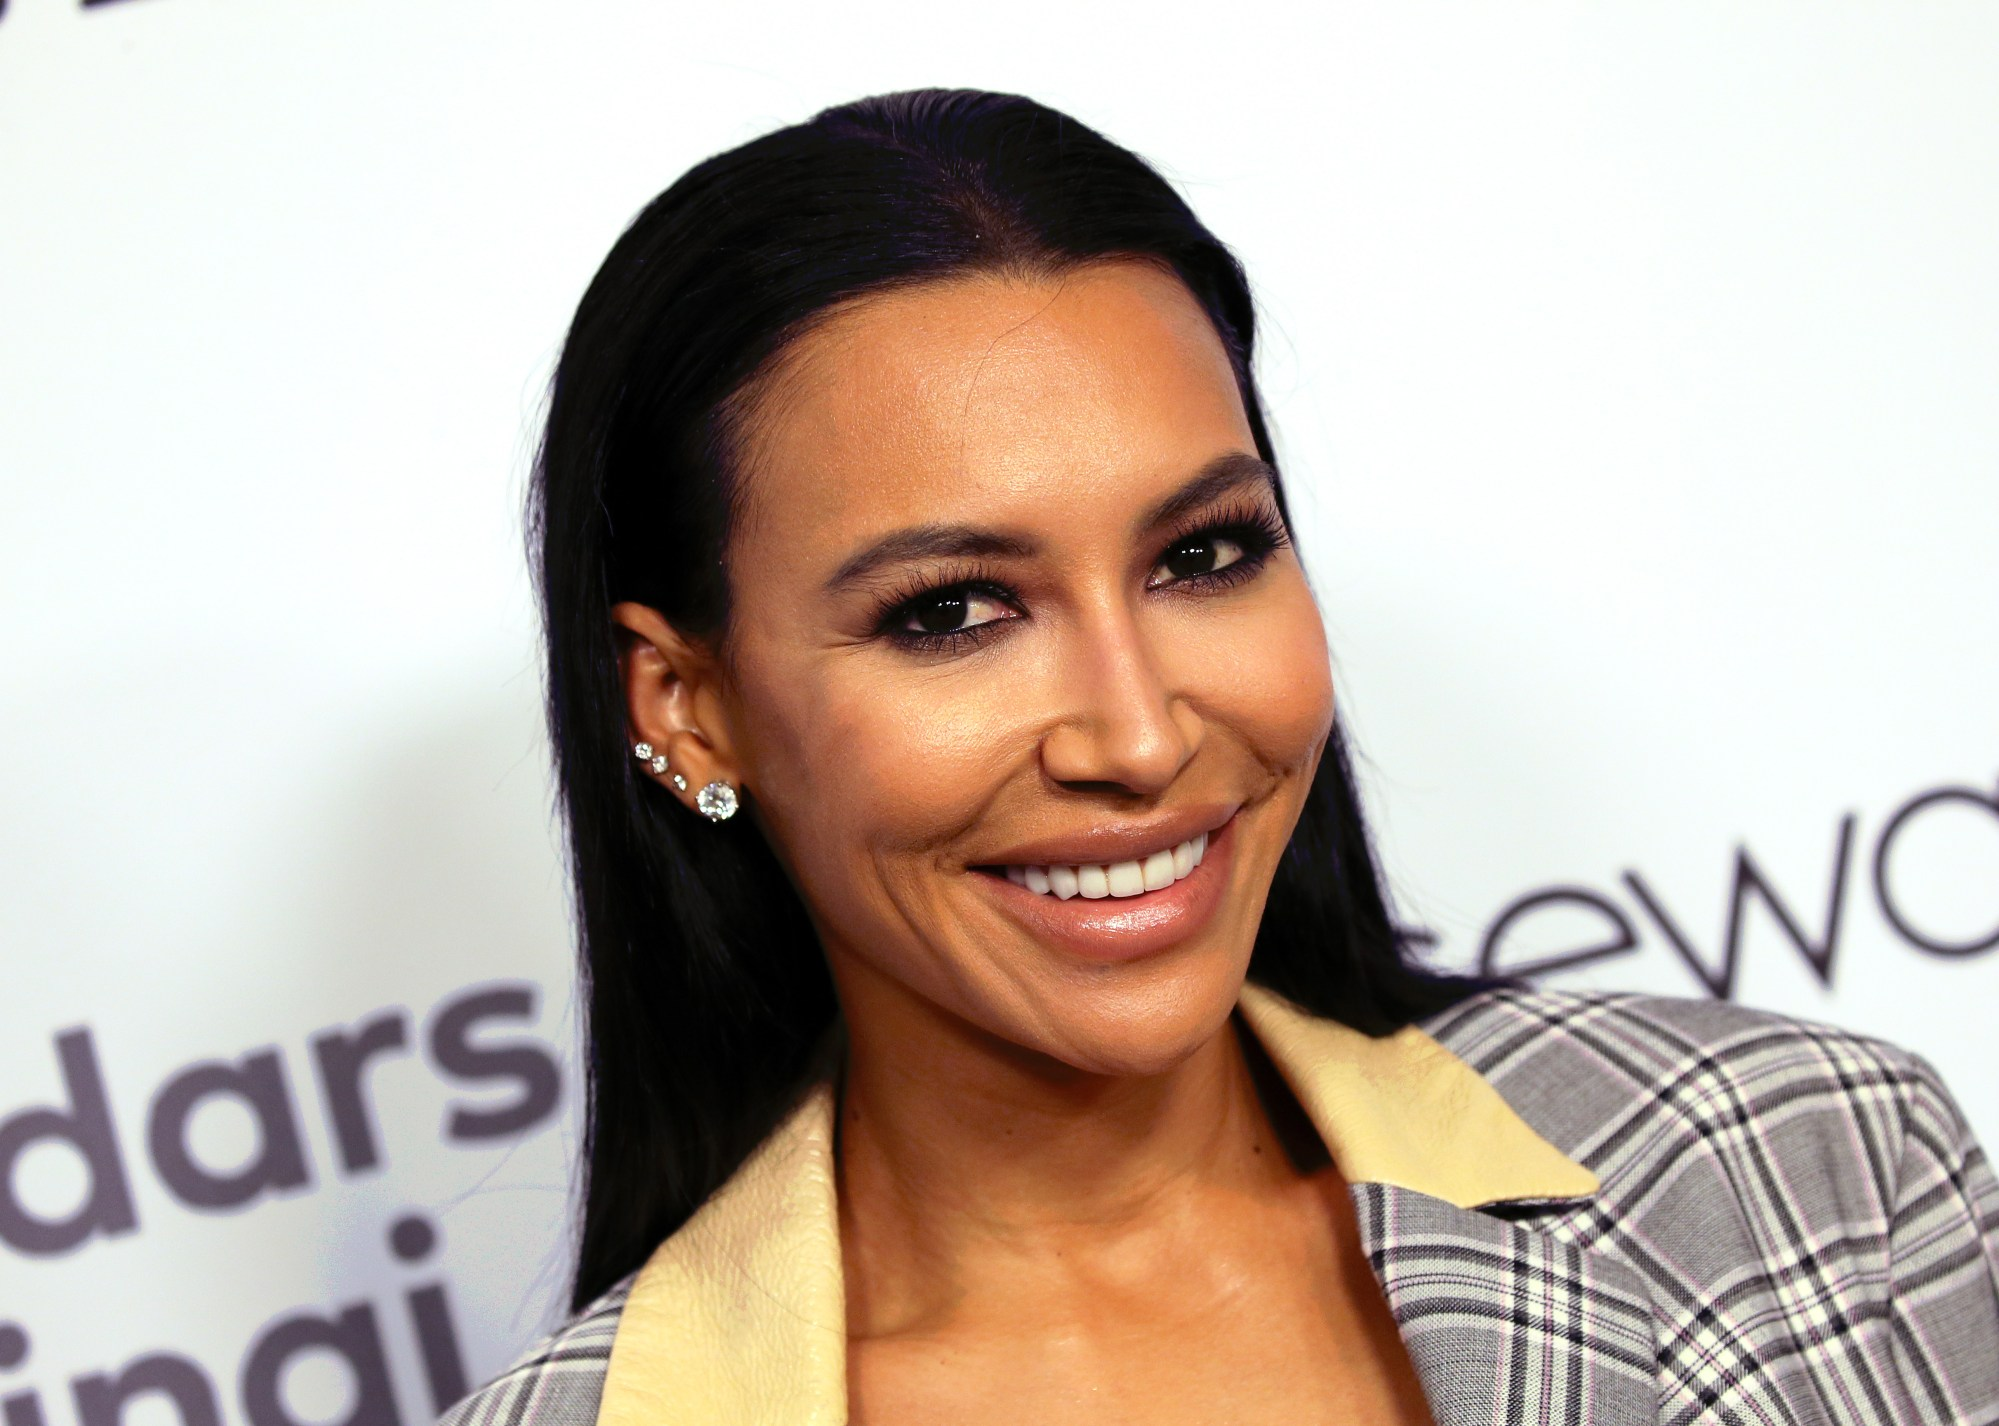 Naya Rivera attends the Women's Guild Cedars-Sinai annual luncheon at the Beverly Wilshire Hotel on Nov. 6, 2019. (David Livingston / Getty Images)